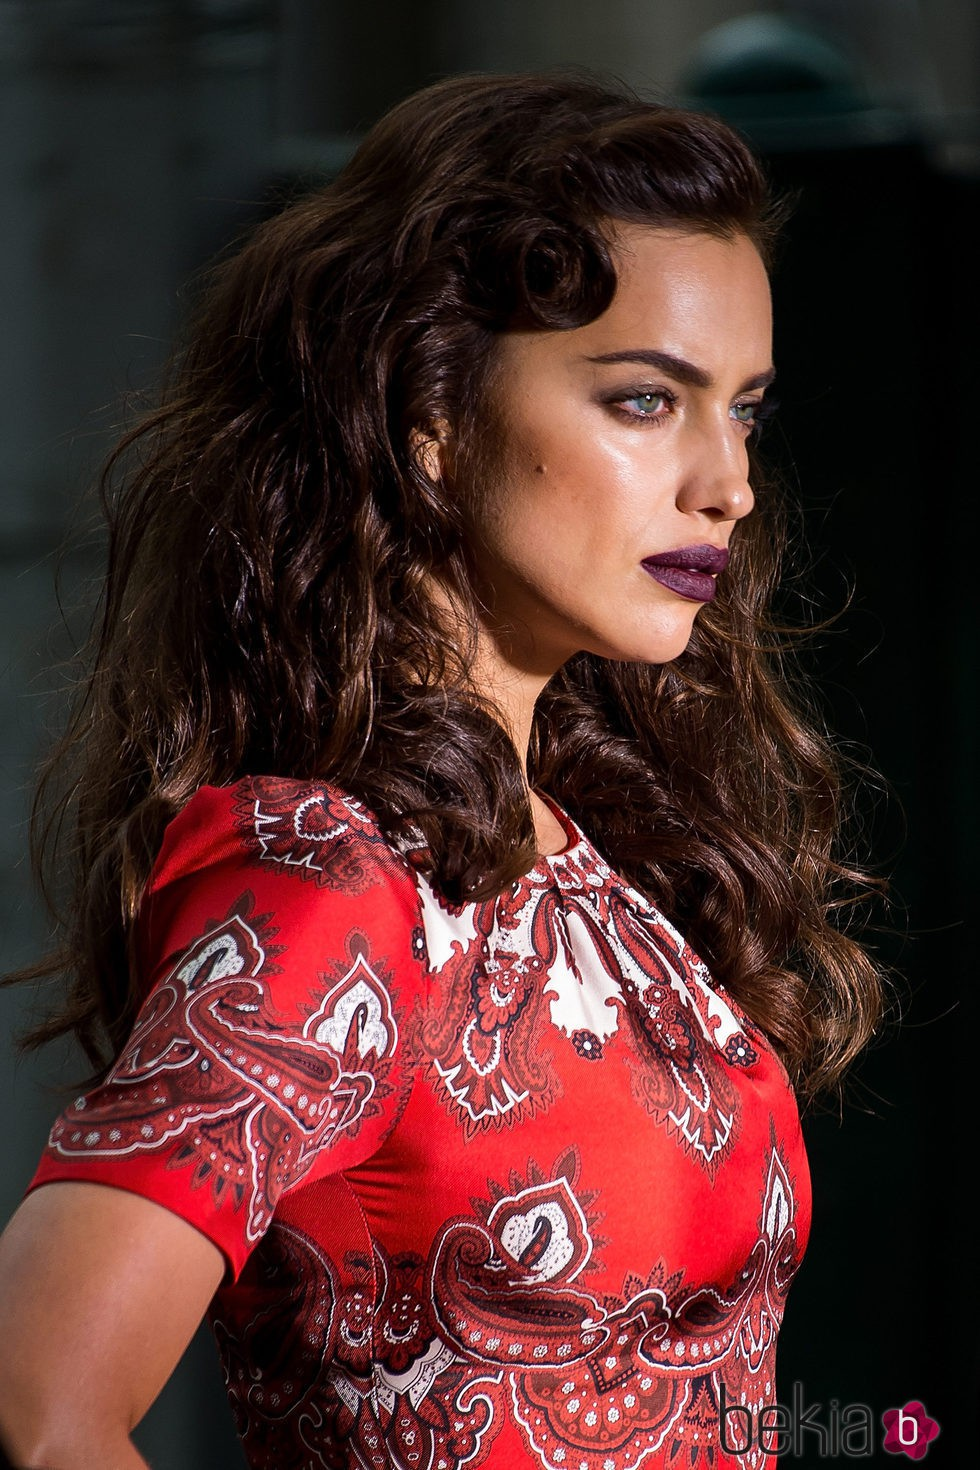 Irina Shayk durante un photoshoot en el Upper East Side